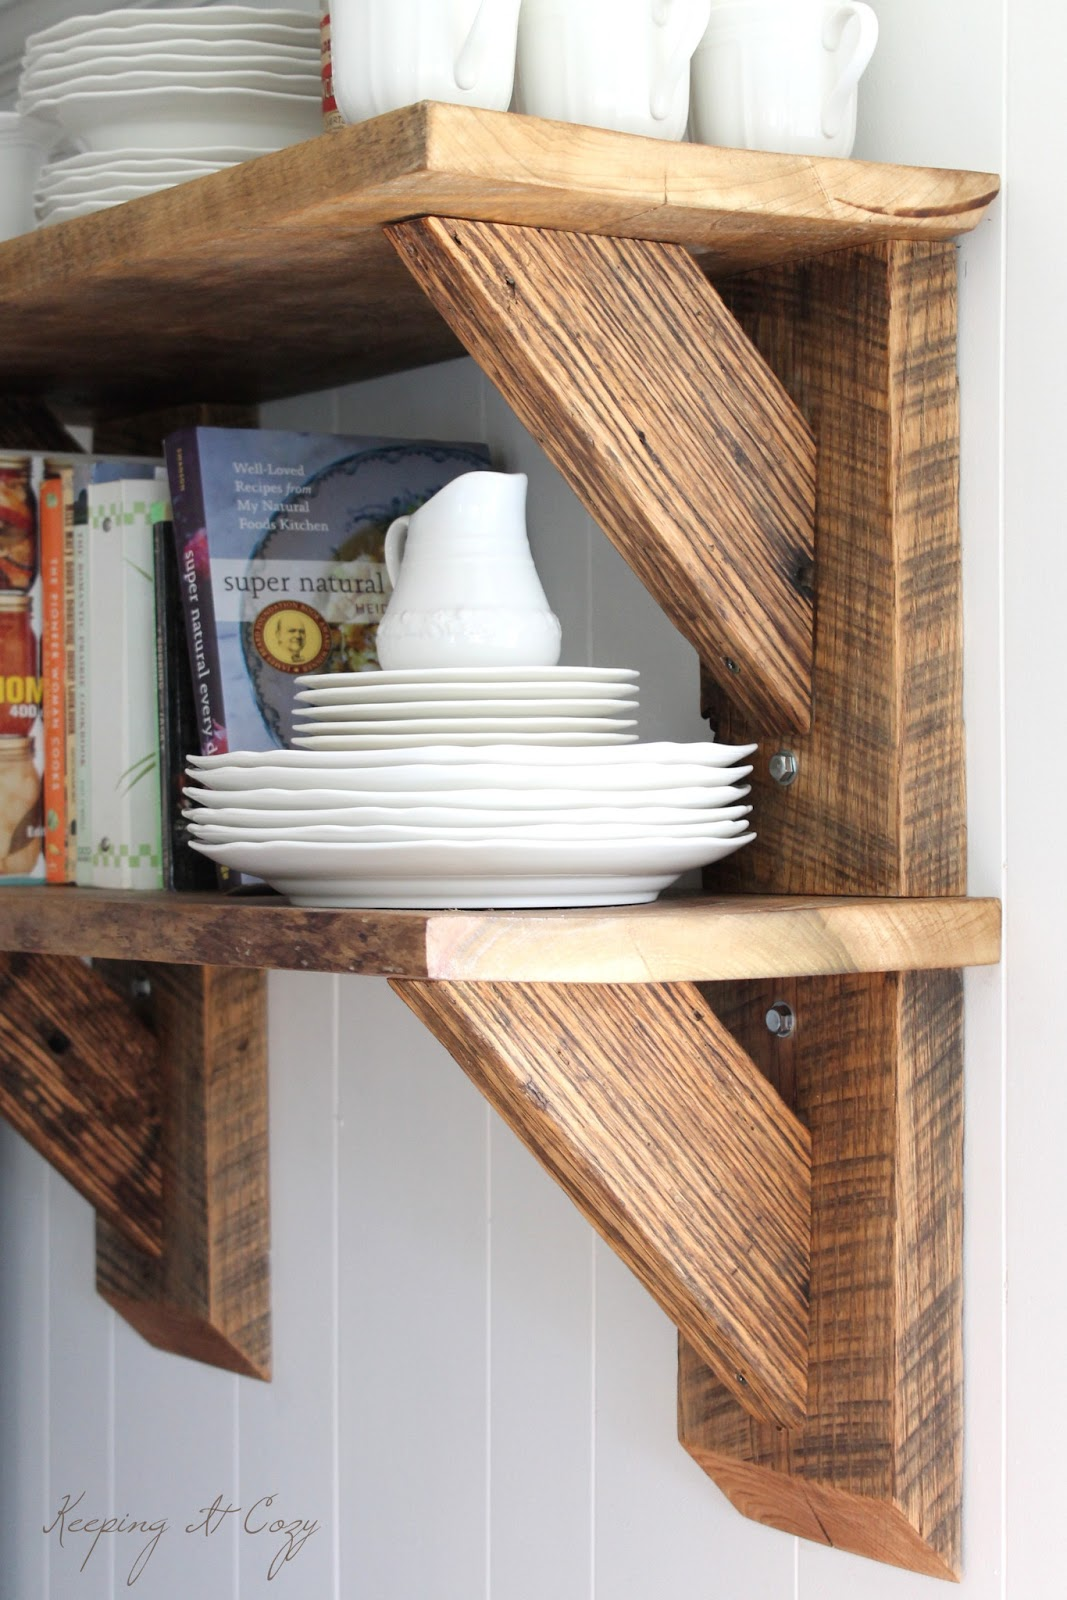 How to build wood shelf supports quick woodworking projects for Wood craft shelves